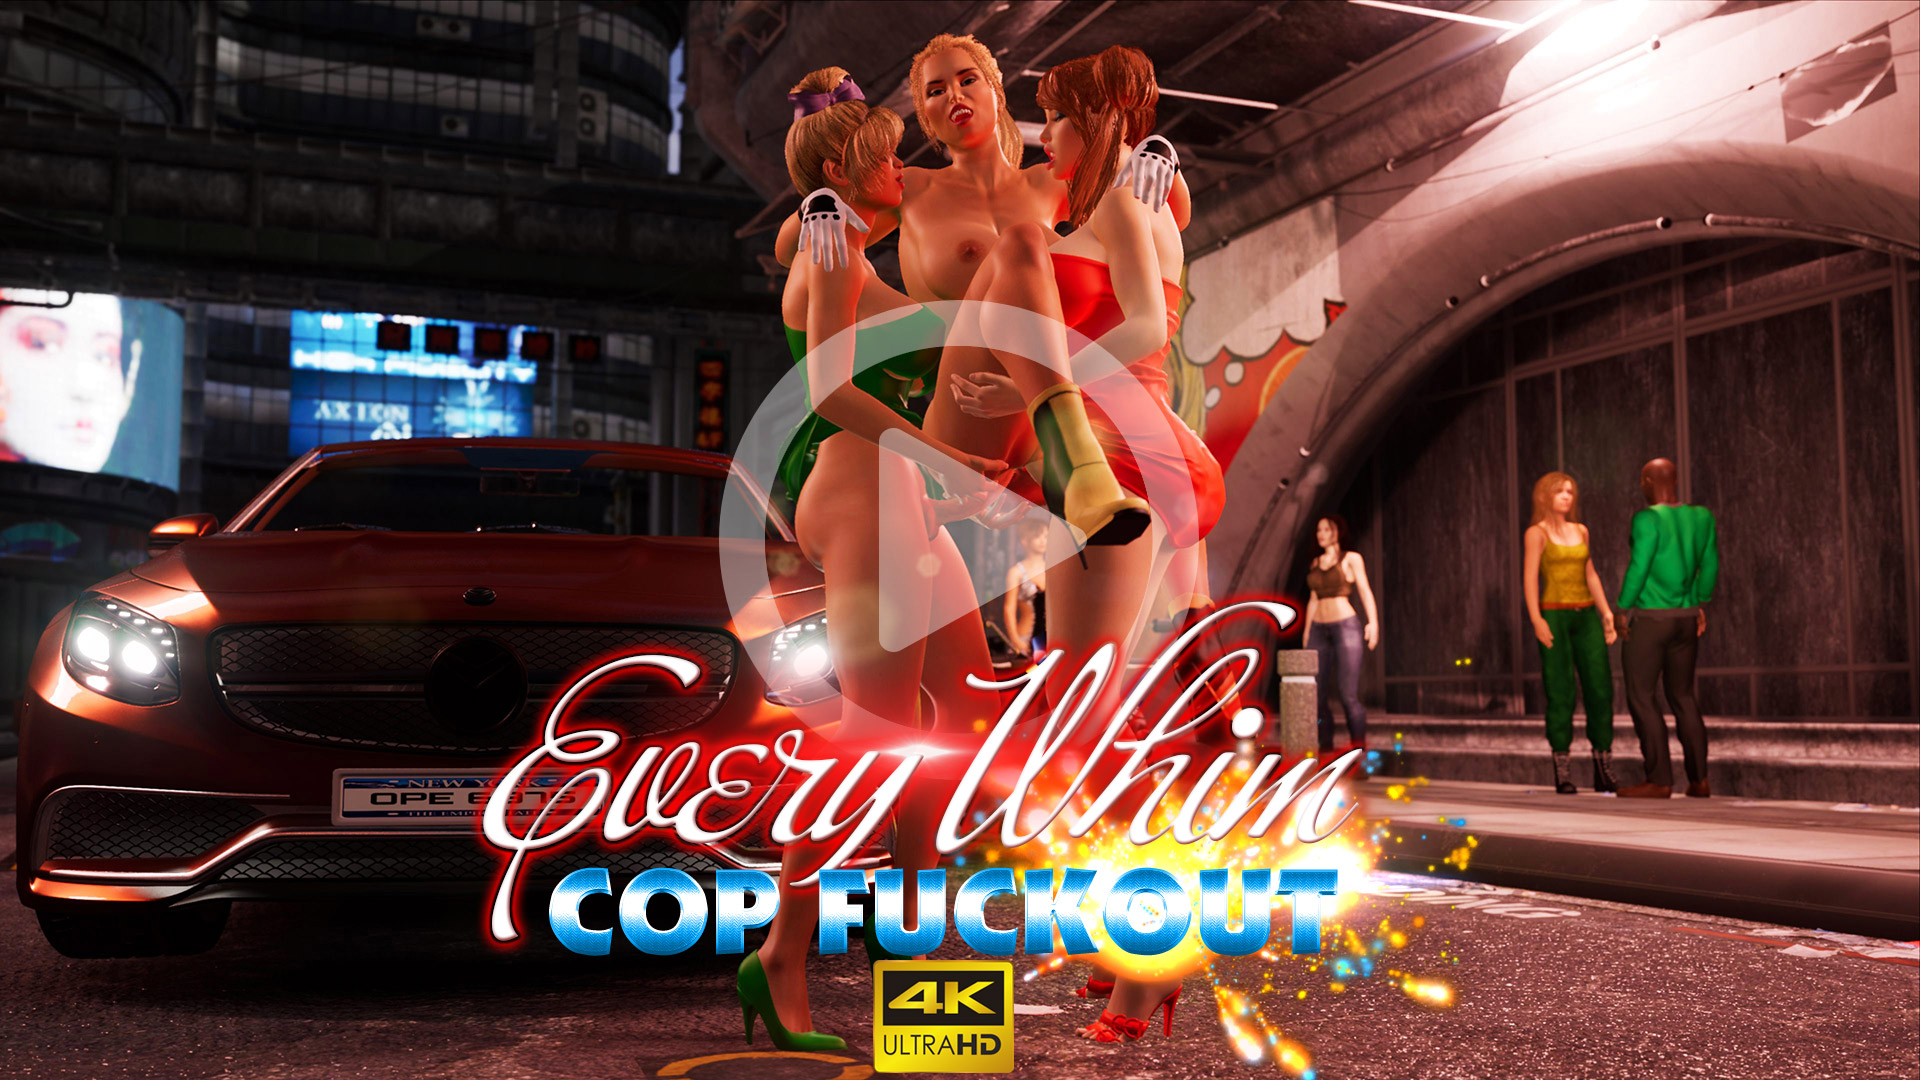 Every Whim - Cop Fuckout public police officer fuck by two futa bimbo on crowded city street video trailer